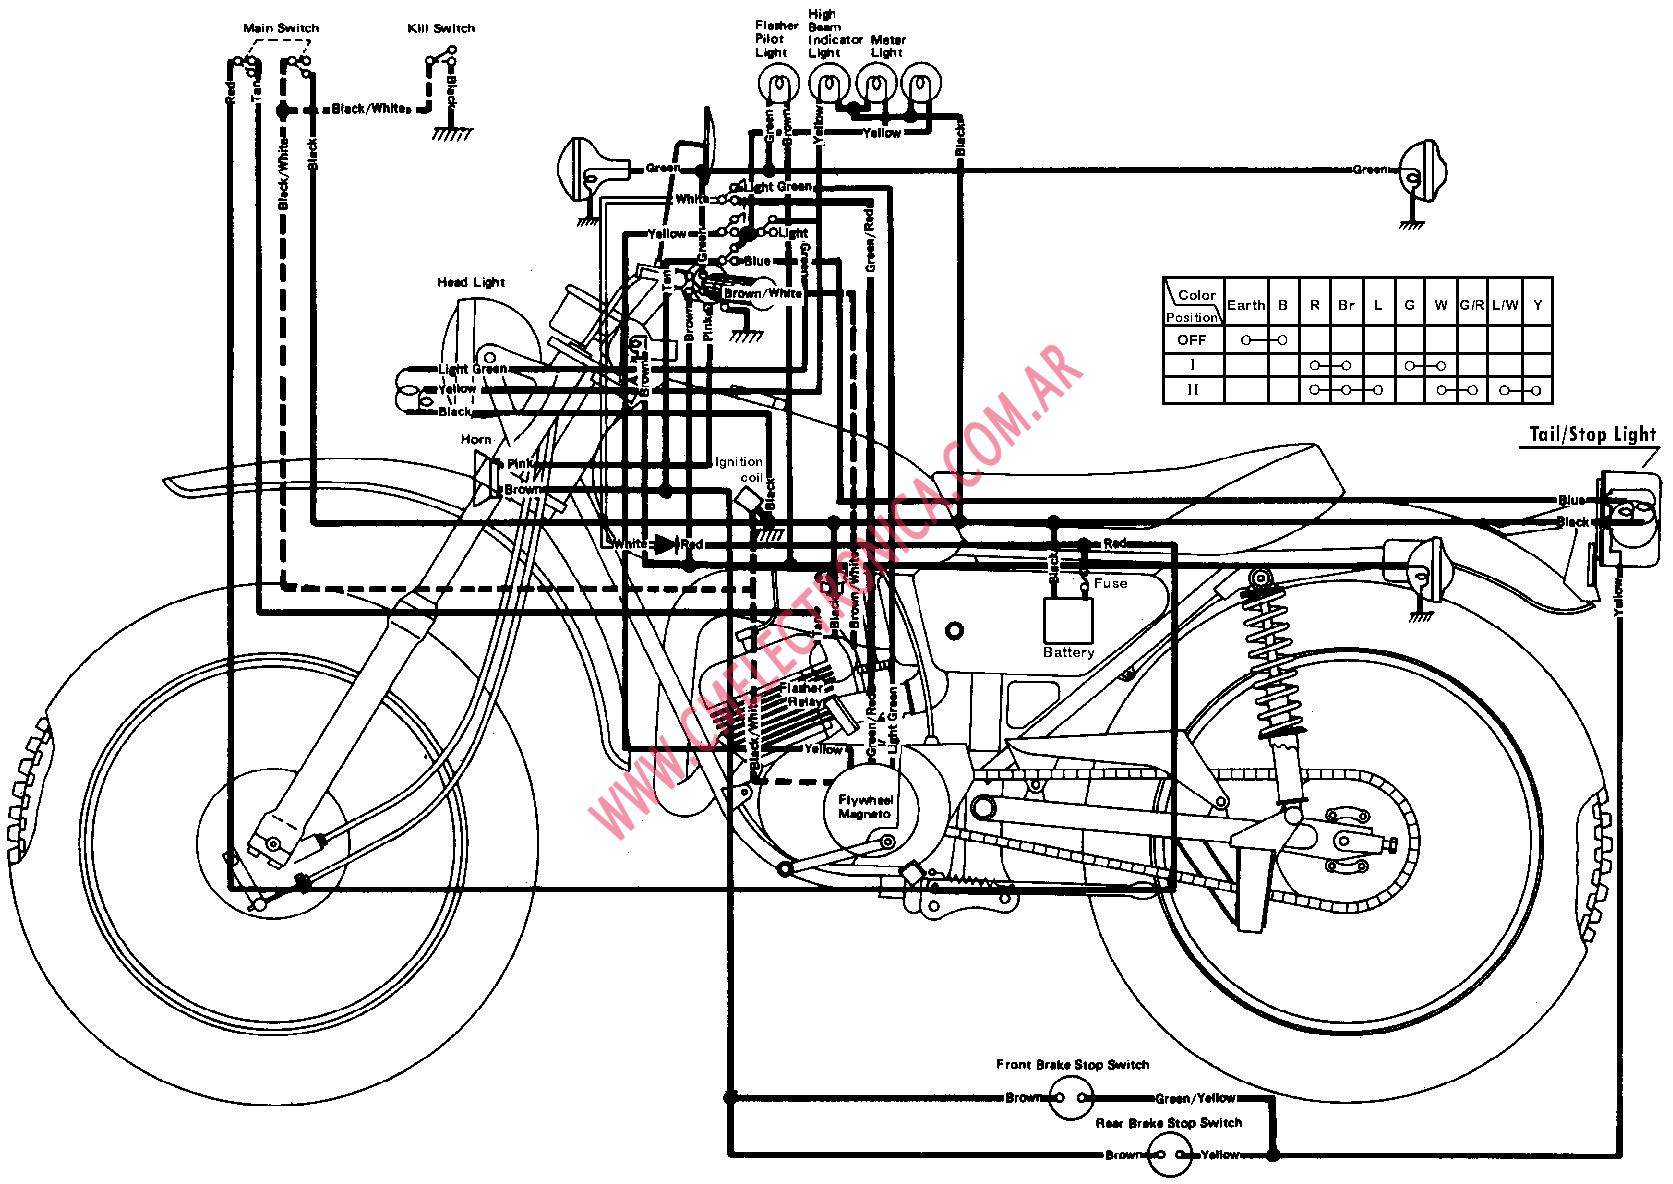 Yamaha Raider Wiring Diagram